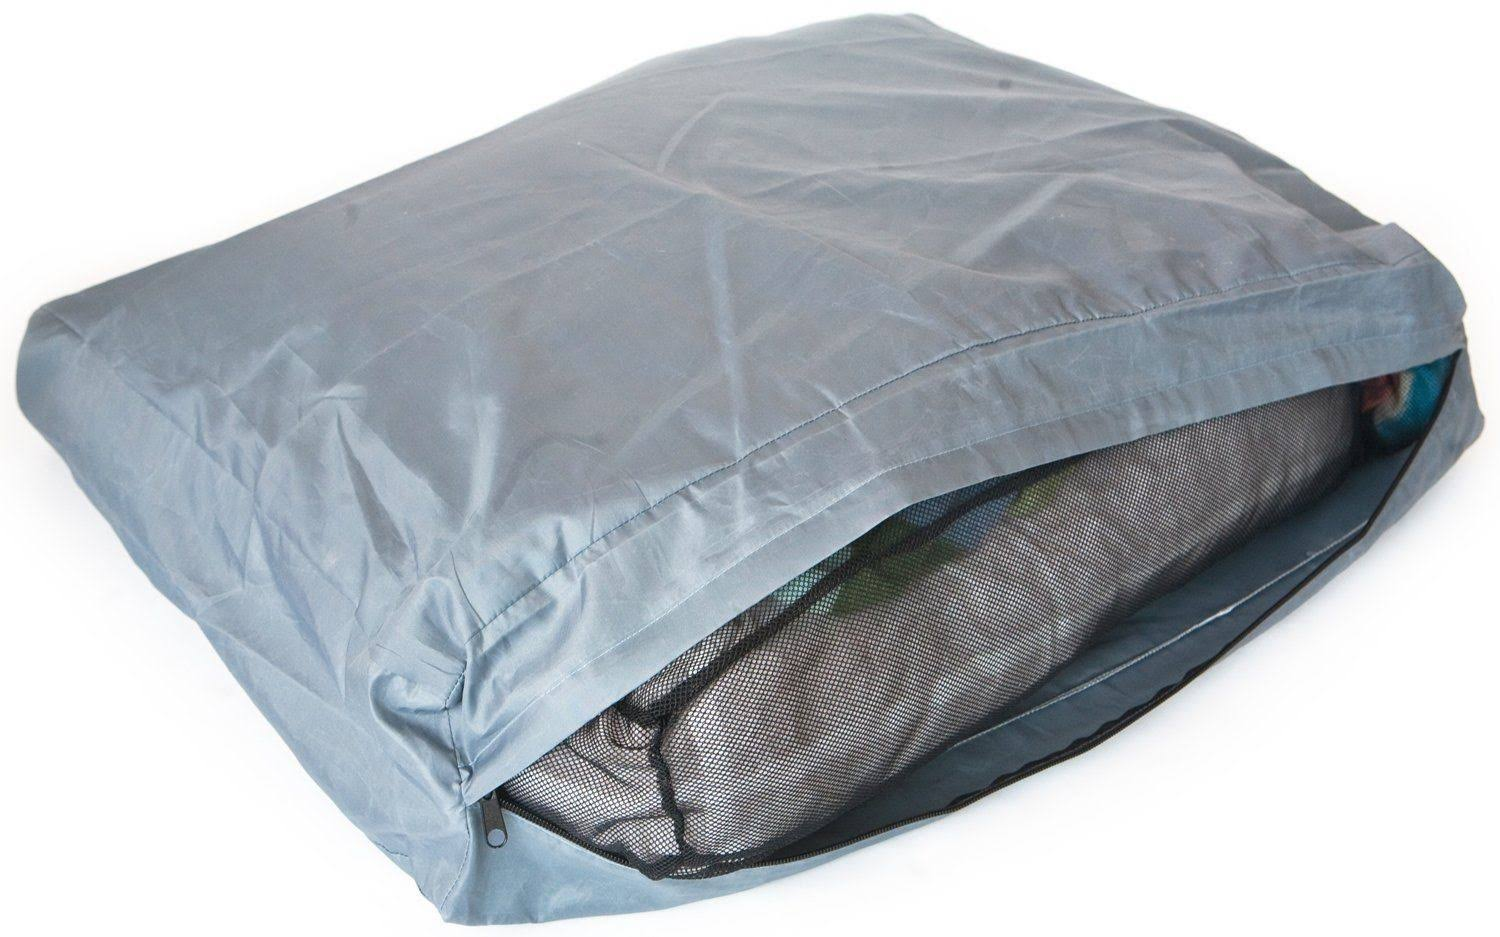 Molly Mutt Waterproof Dog Bed Liner